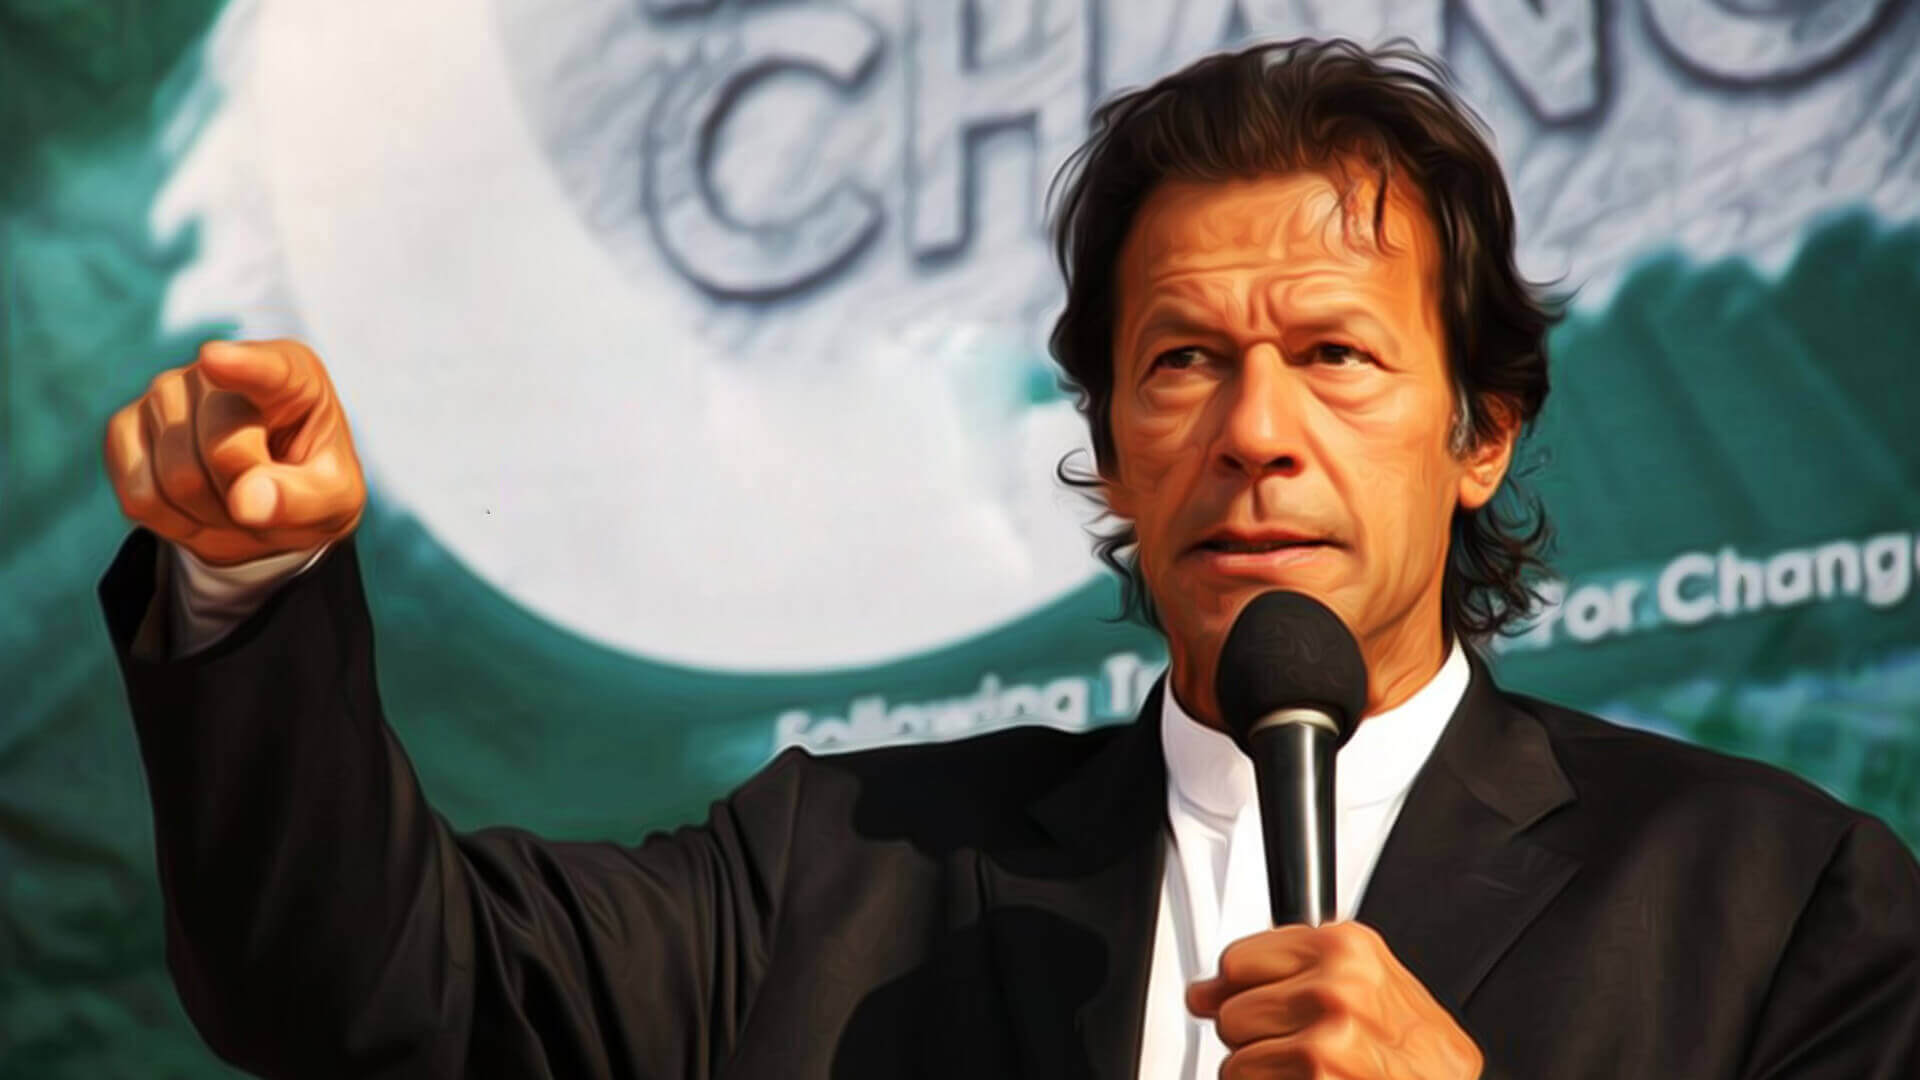 What does Imran Khan's election as Pakistan's PM imply for India?